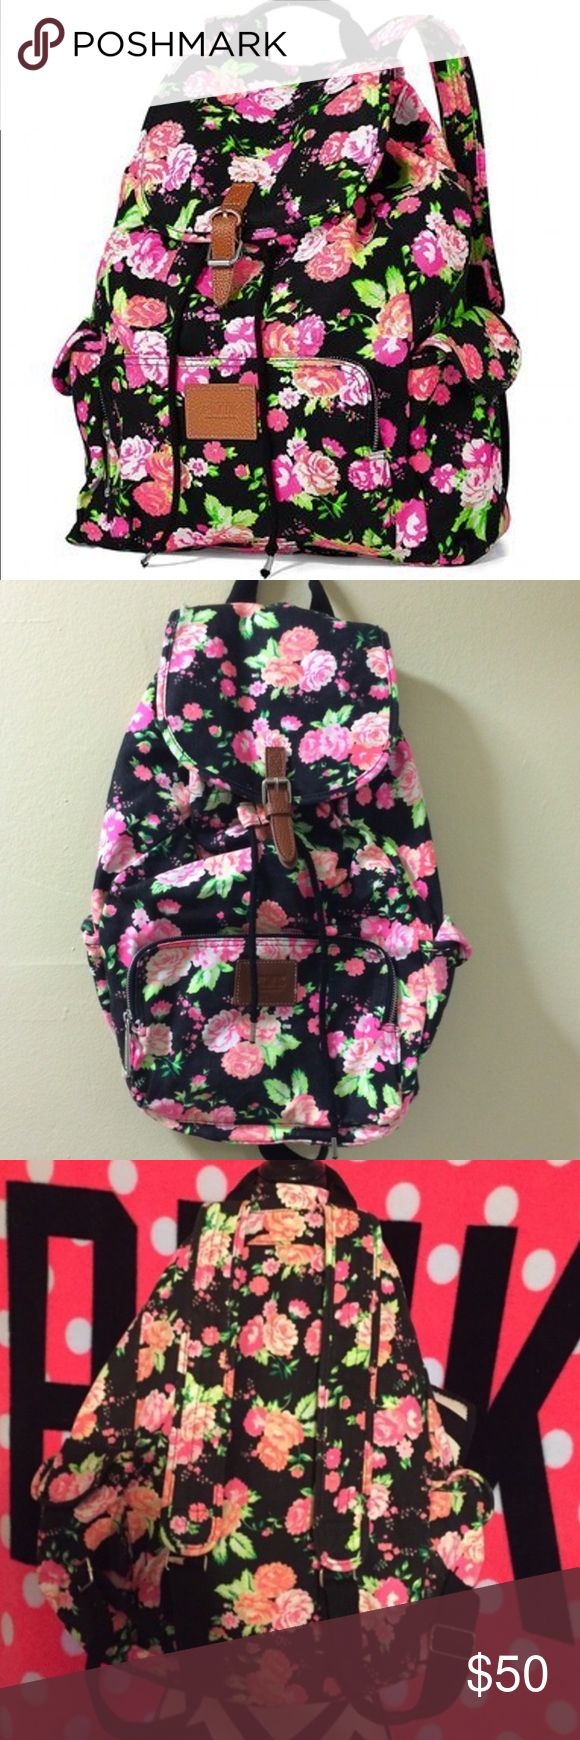 VS PINK Full-Sized Limited Edition Floral Backpack A little faded which actually gives it a cute vintage look and otherwise in great condition. Cute black/charcoal gray large-sized backpack with pink floral print all over from Victoria's Secret Pink. Limited edition, rare, & no longer sold in stores. Drawstring and snap button closure. Zipper pouch and 2 side compartments. Sooo cute! PINK Victoria's Secret Bags Backpacks